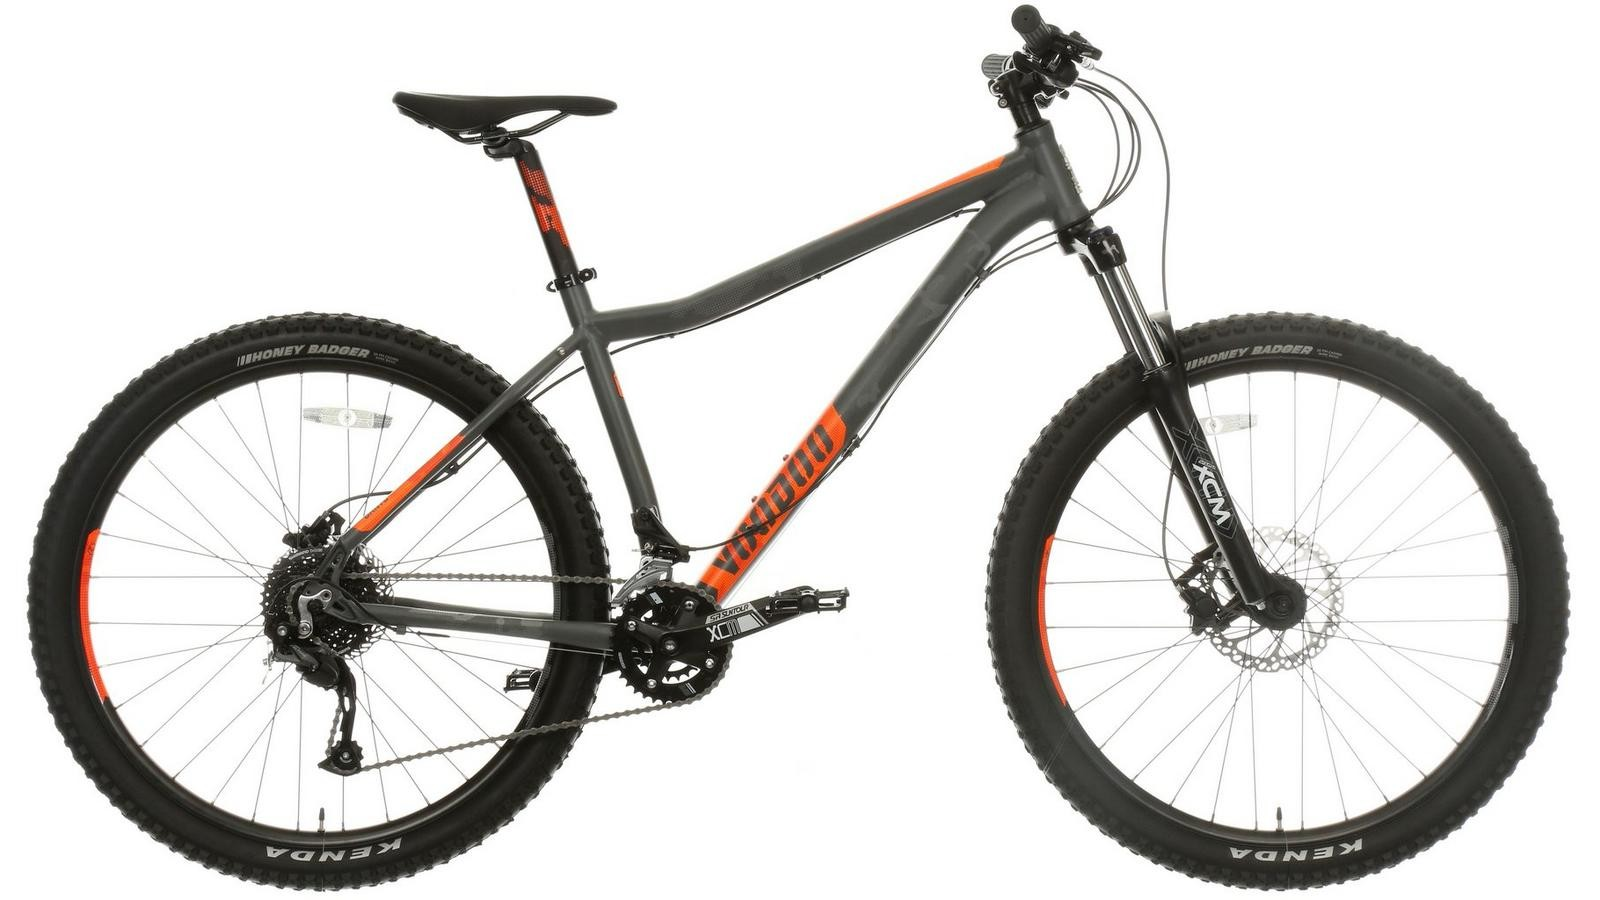 This could be a great beginner's mountain bike